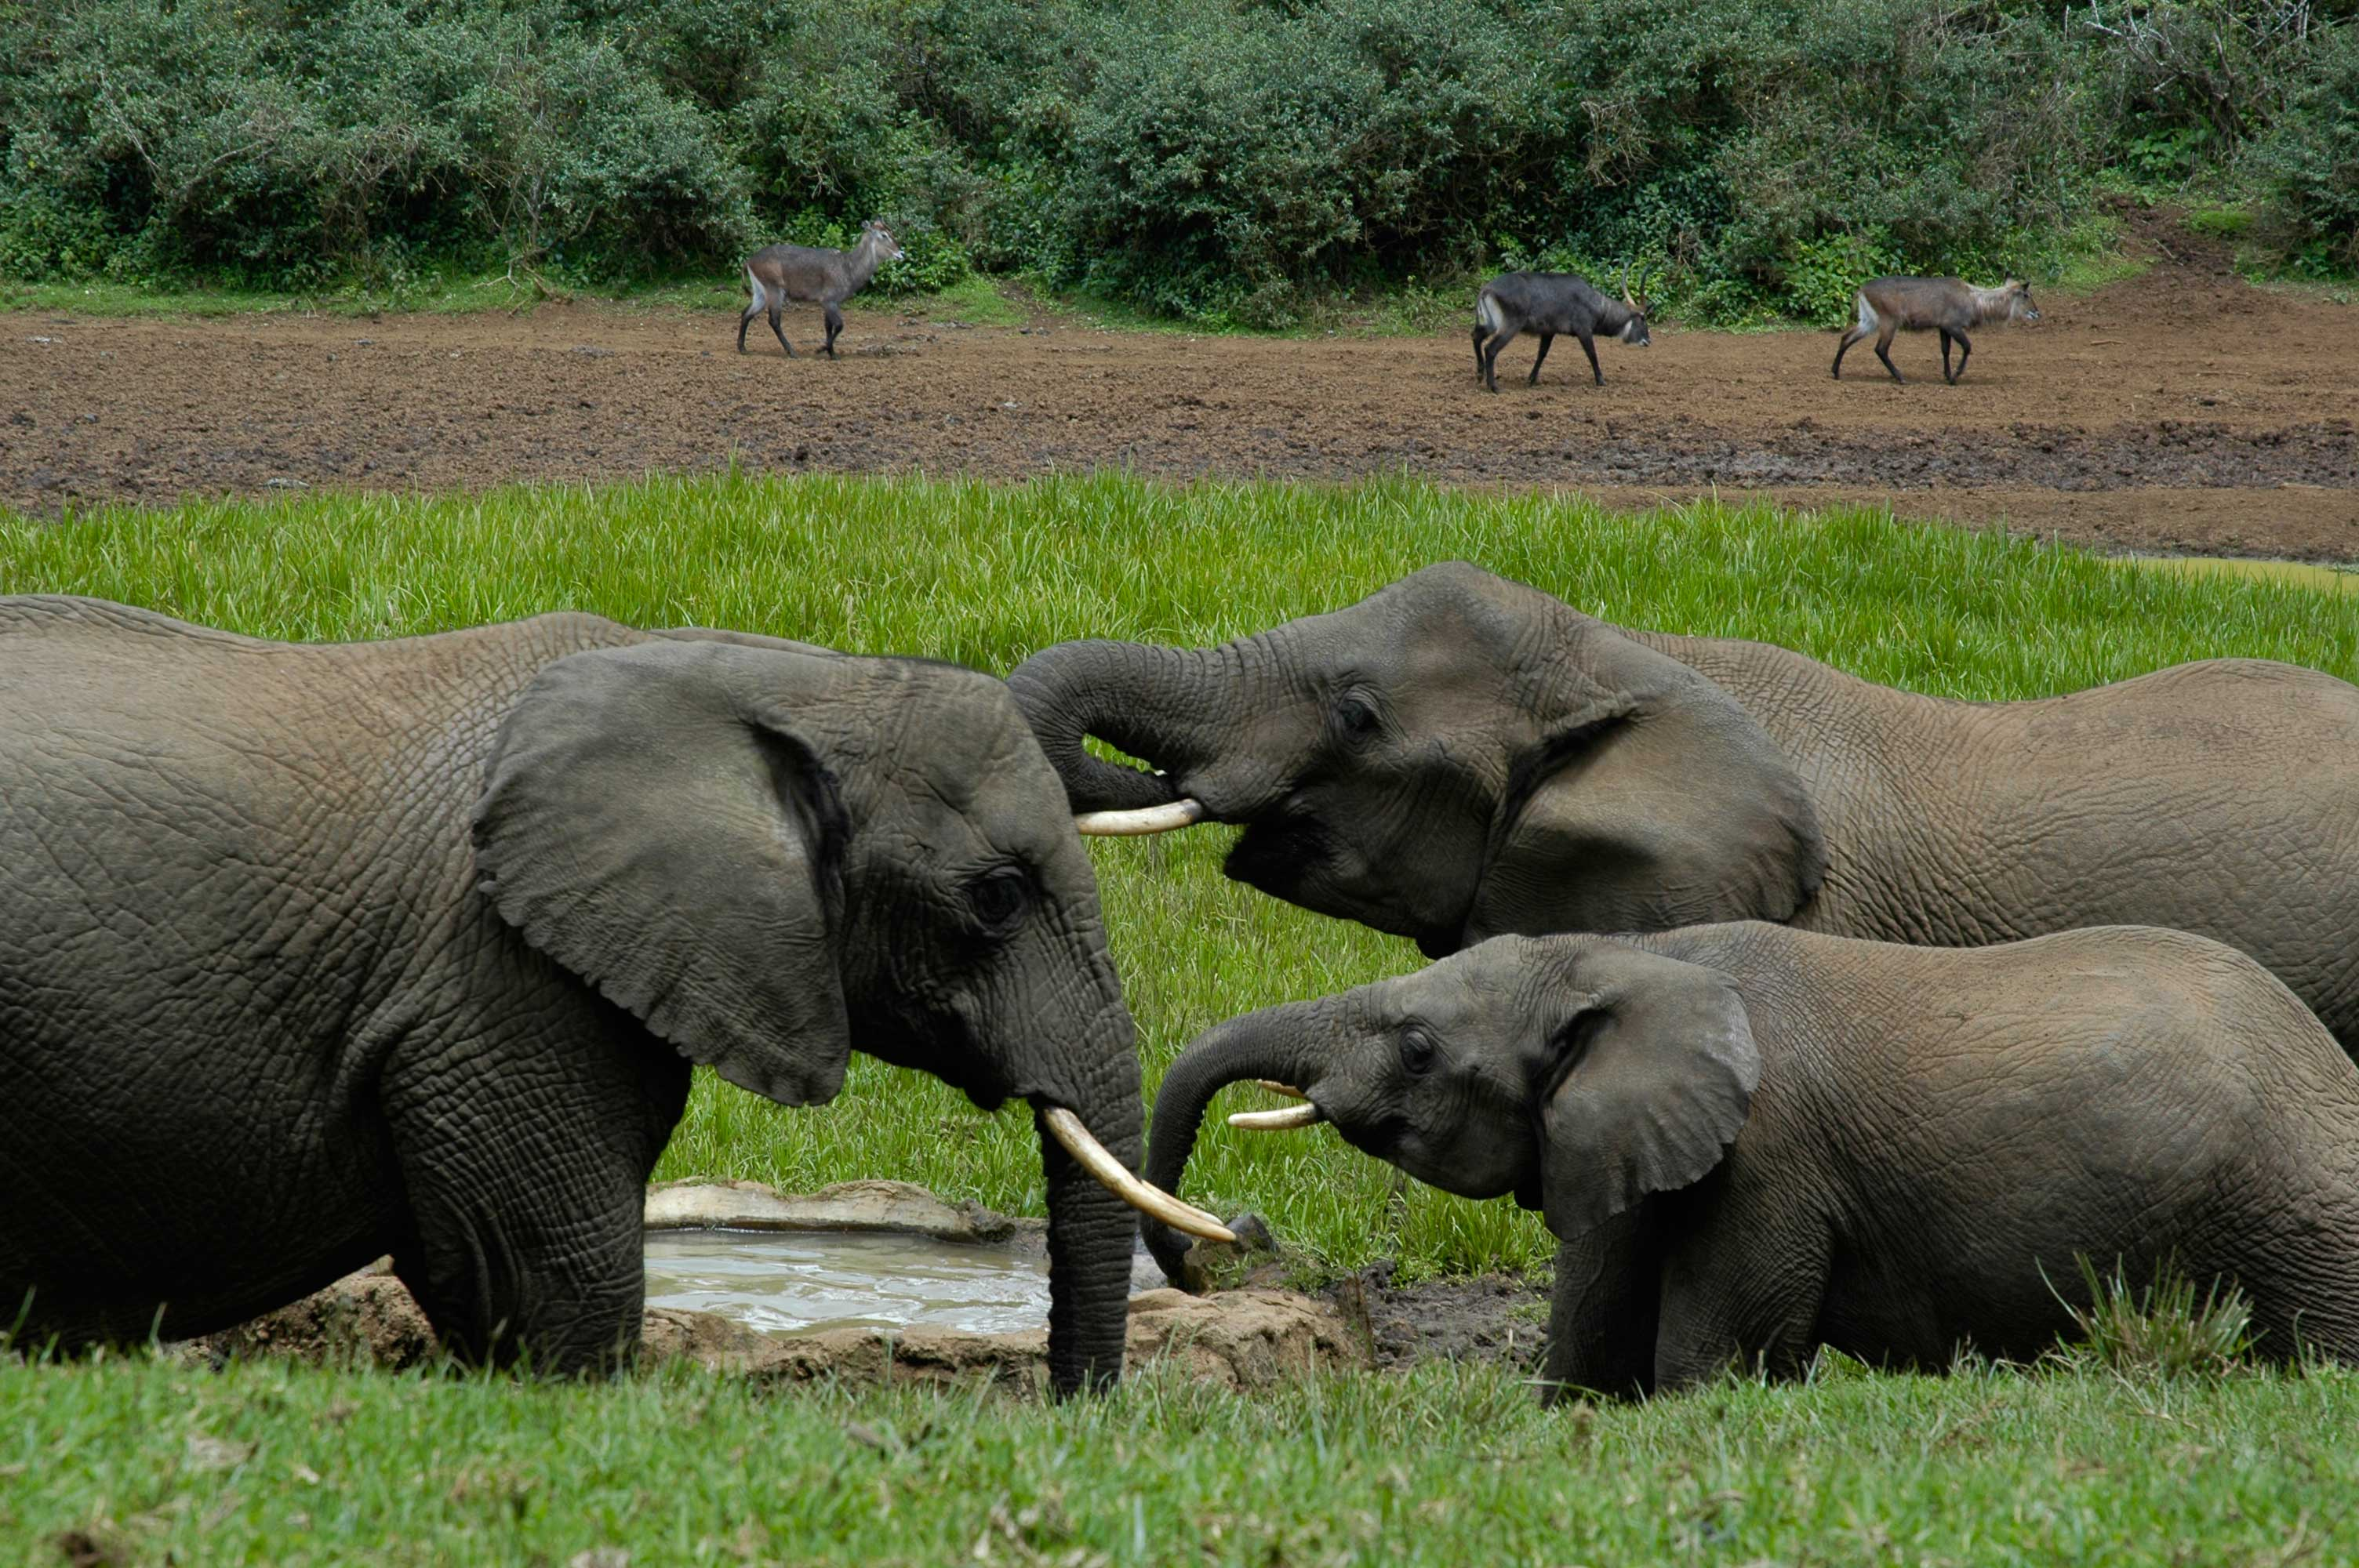 African mountain animals - Also Available Are Mountain Expeditions Using Mules As Pack Animals Organised By Mountain Safaris Firms And Alpine Huts For Mountaineers Booked Through The